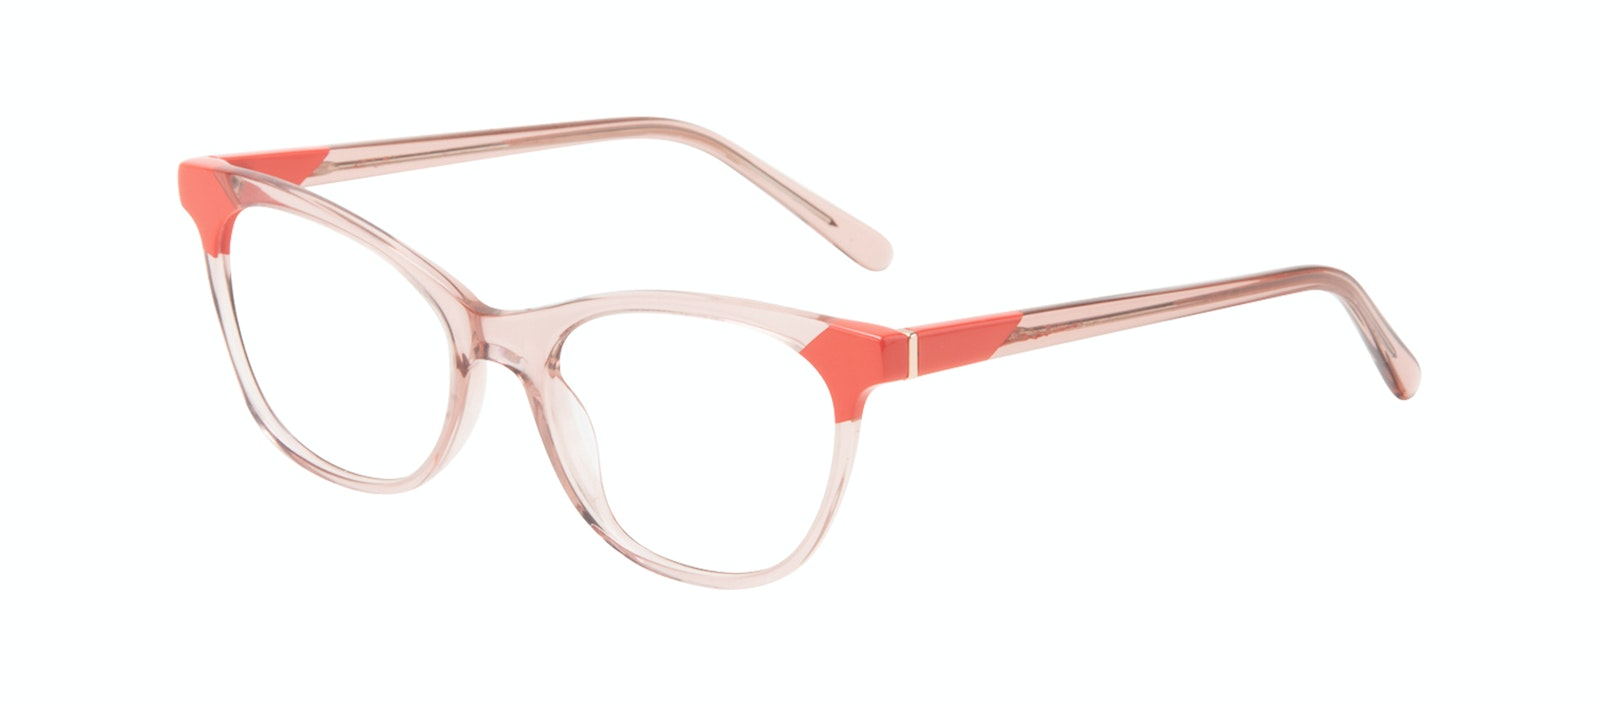 Affordable Fashion Glasses Cat Eye Eyeglasses Women Witty Pink Coral Tilt